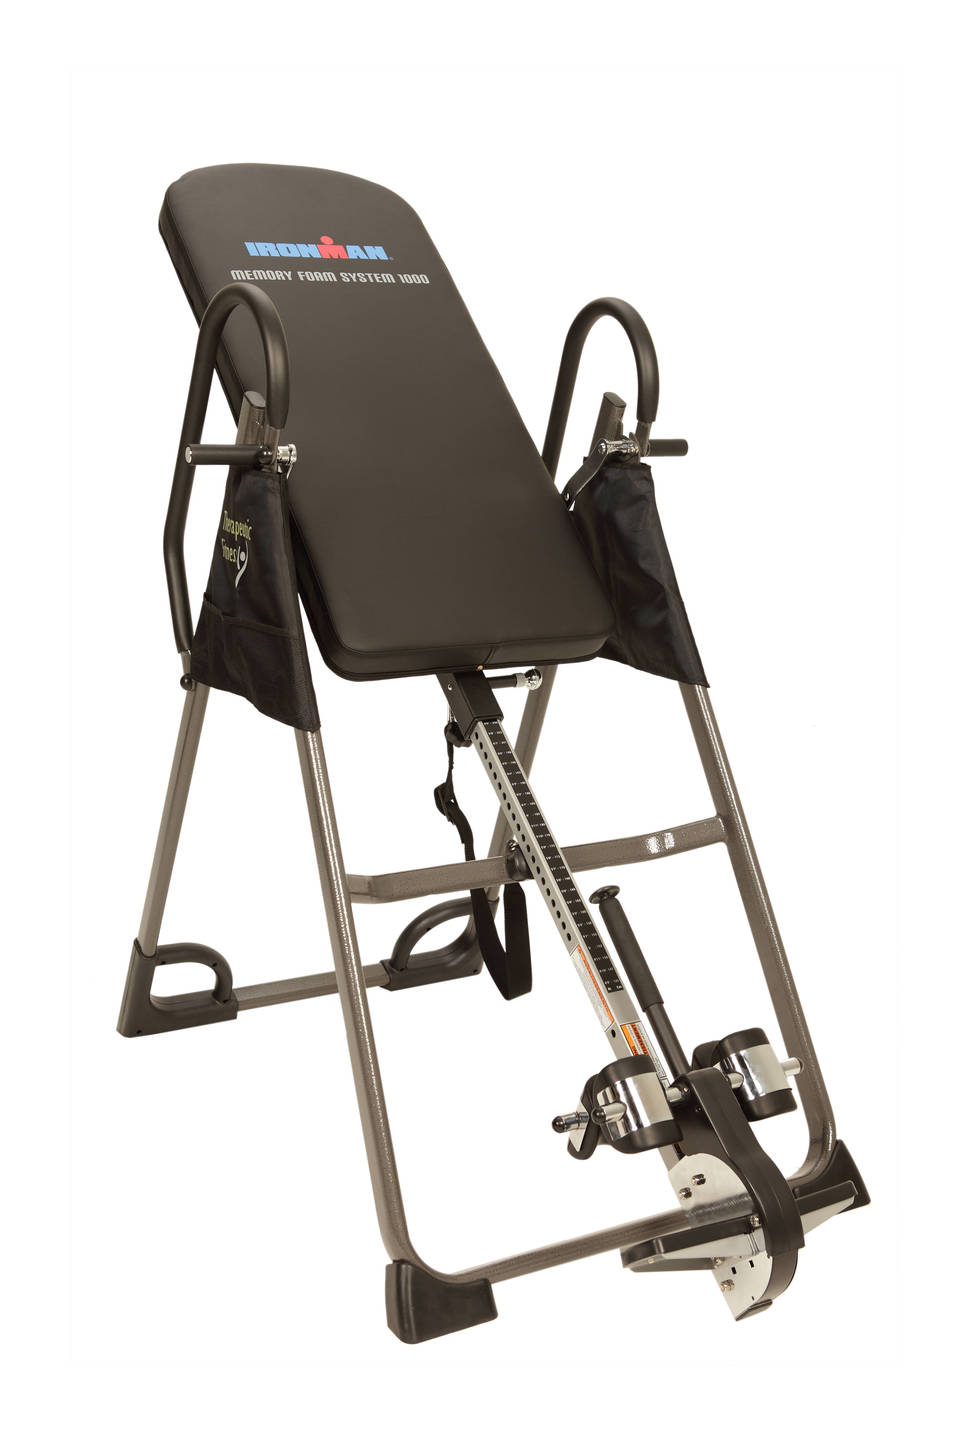 Perfect IRONMAN High Capacity Gravity 3000 Inversion Table